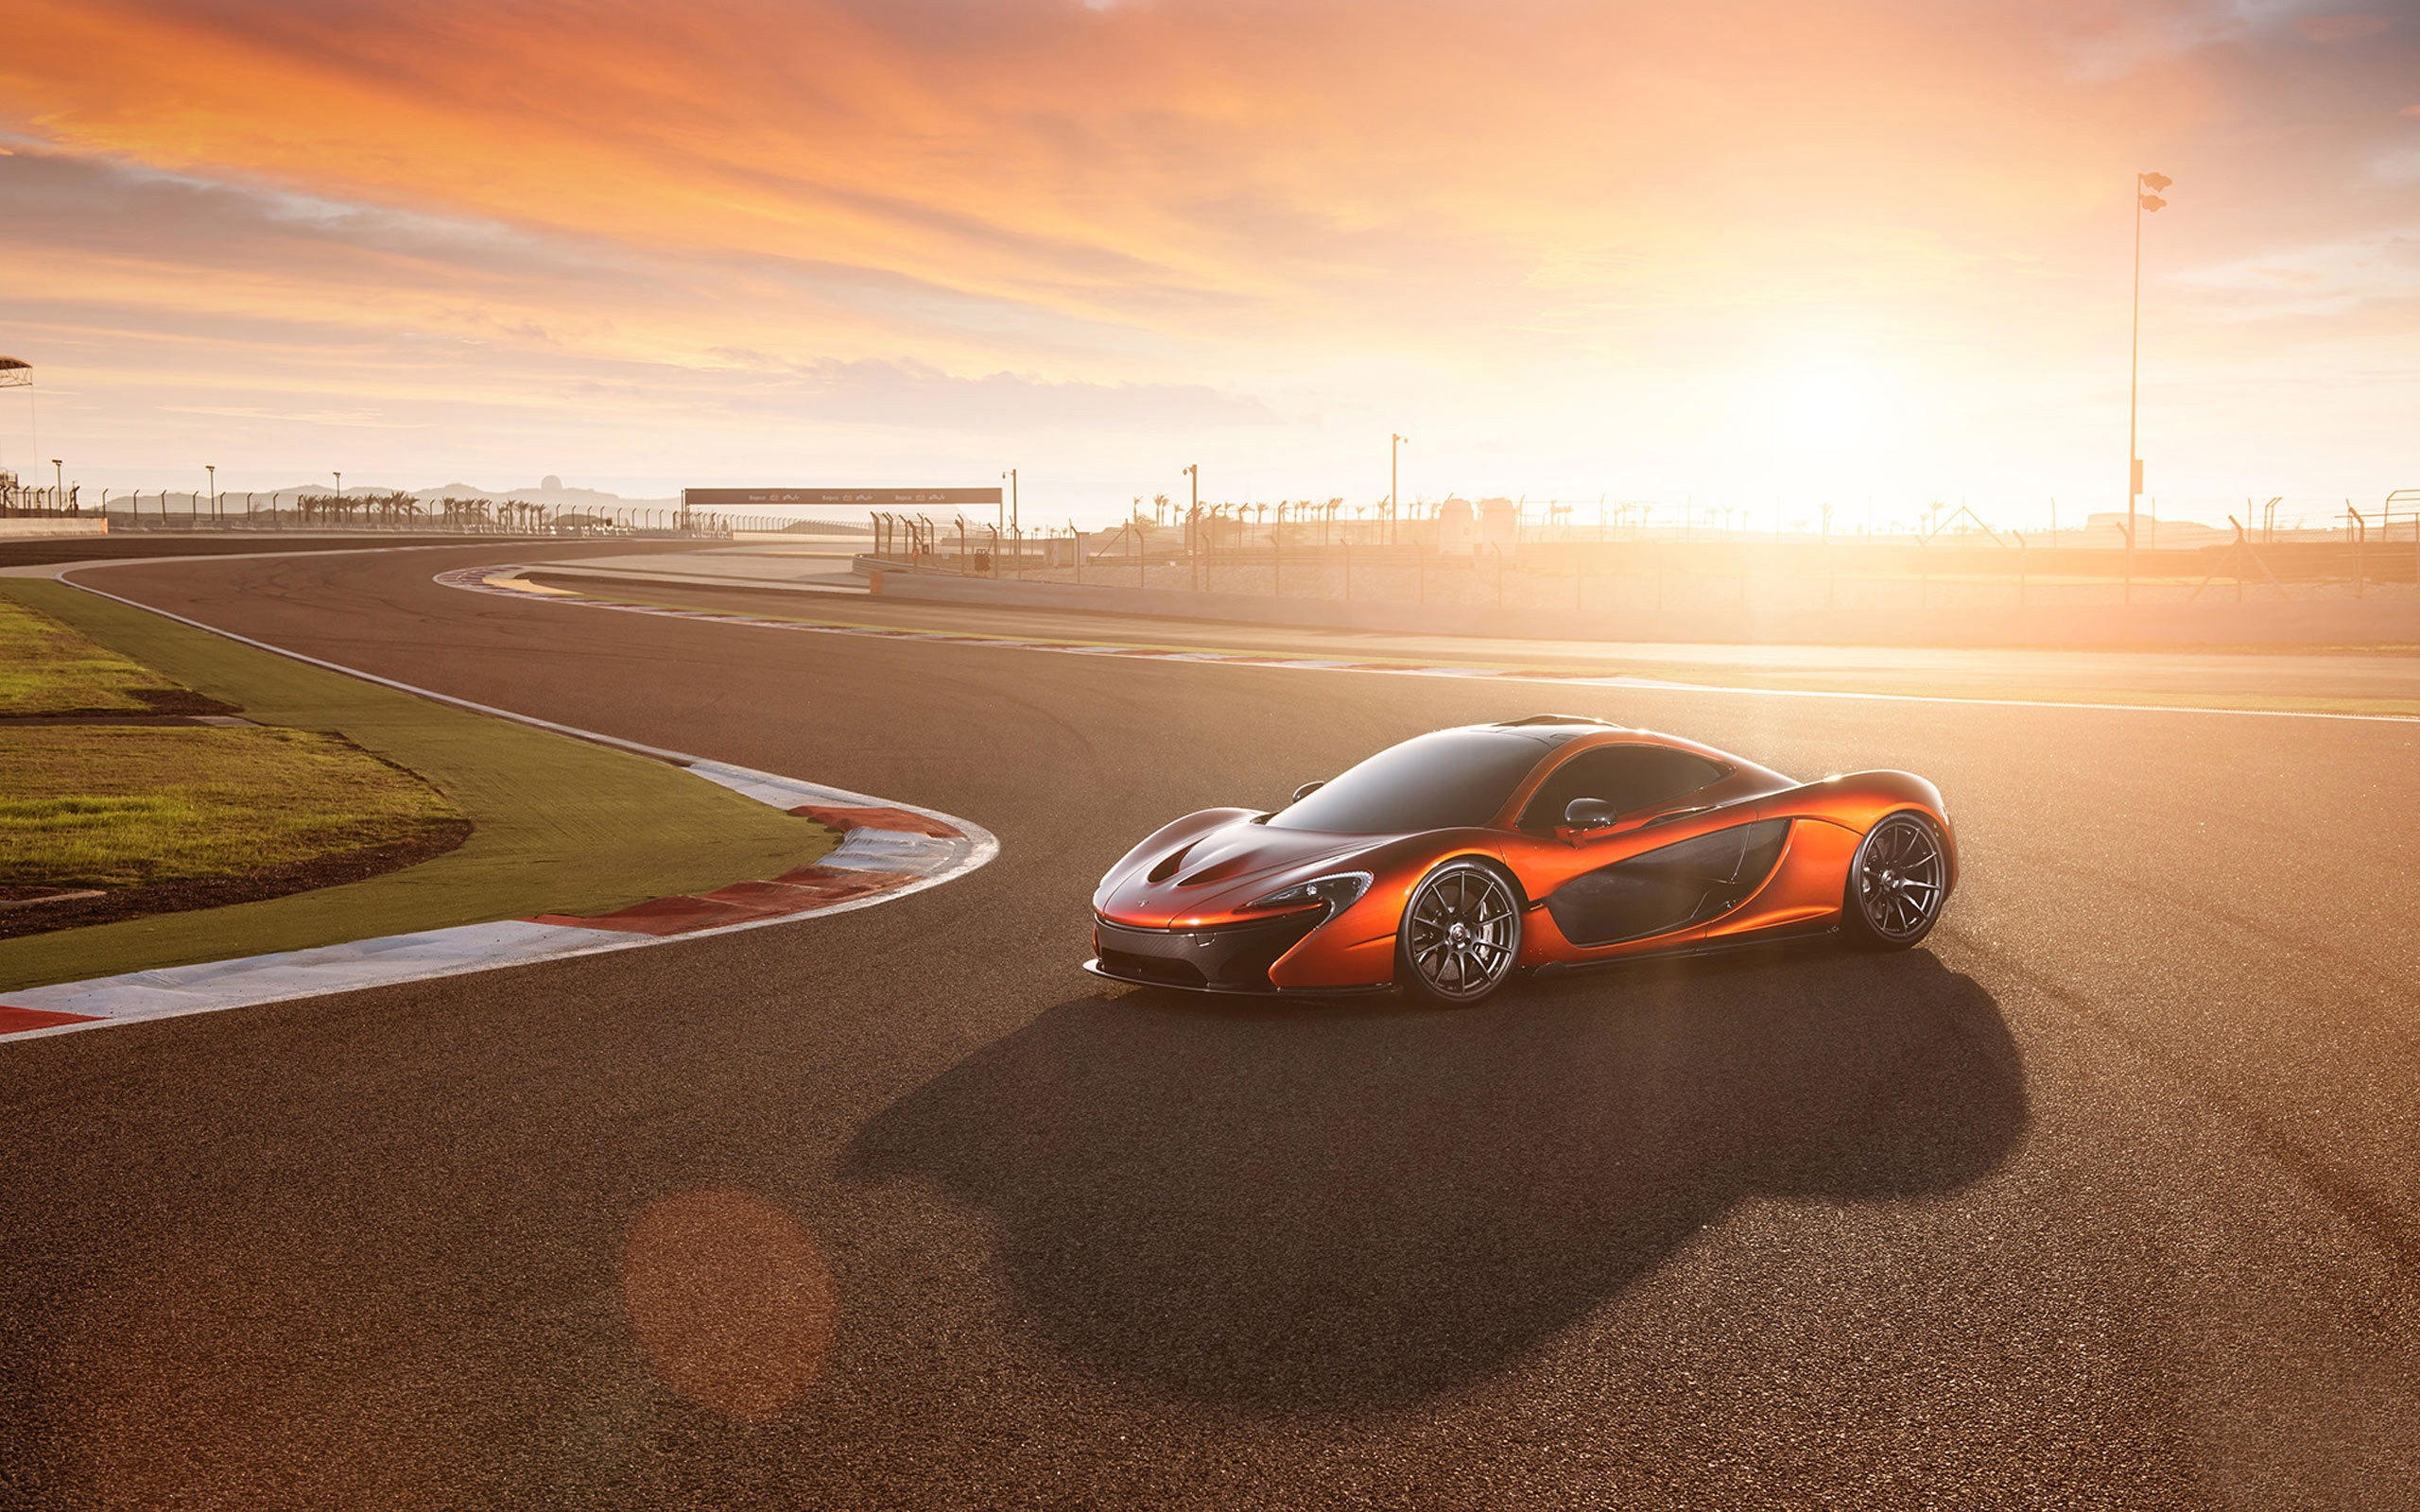 2013 mclaren p1 wallpaper | hd car wallpapers | id #3254